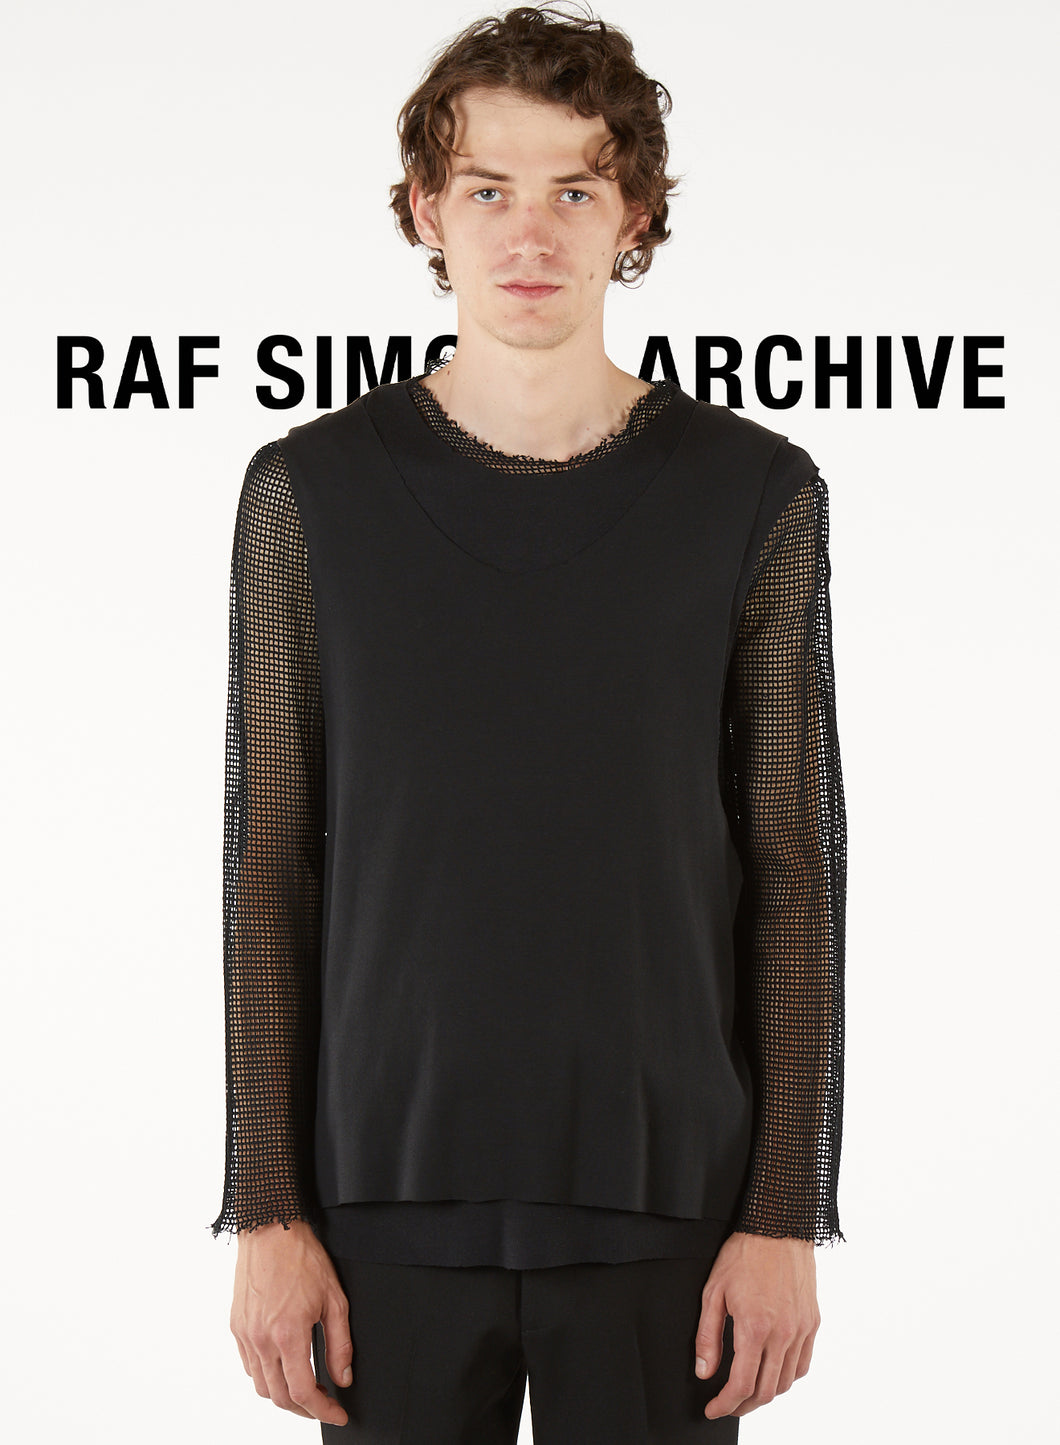 Raf Simons ARCHIVE REDUX long sleeved t-shirt